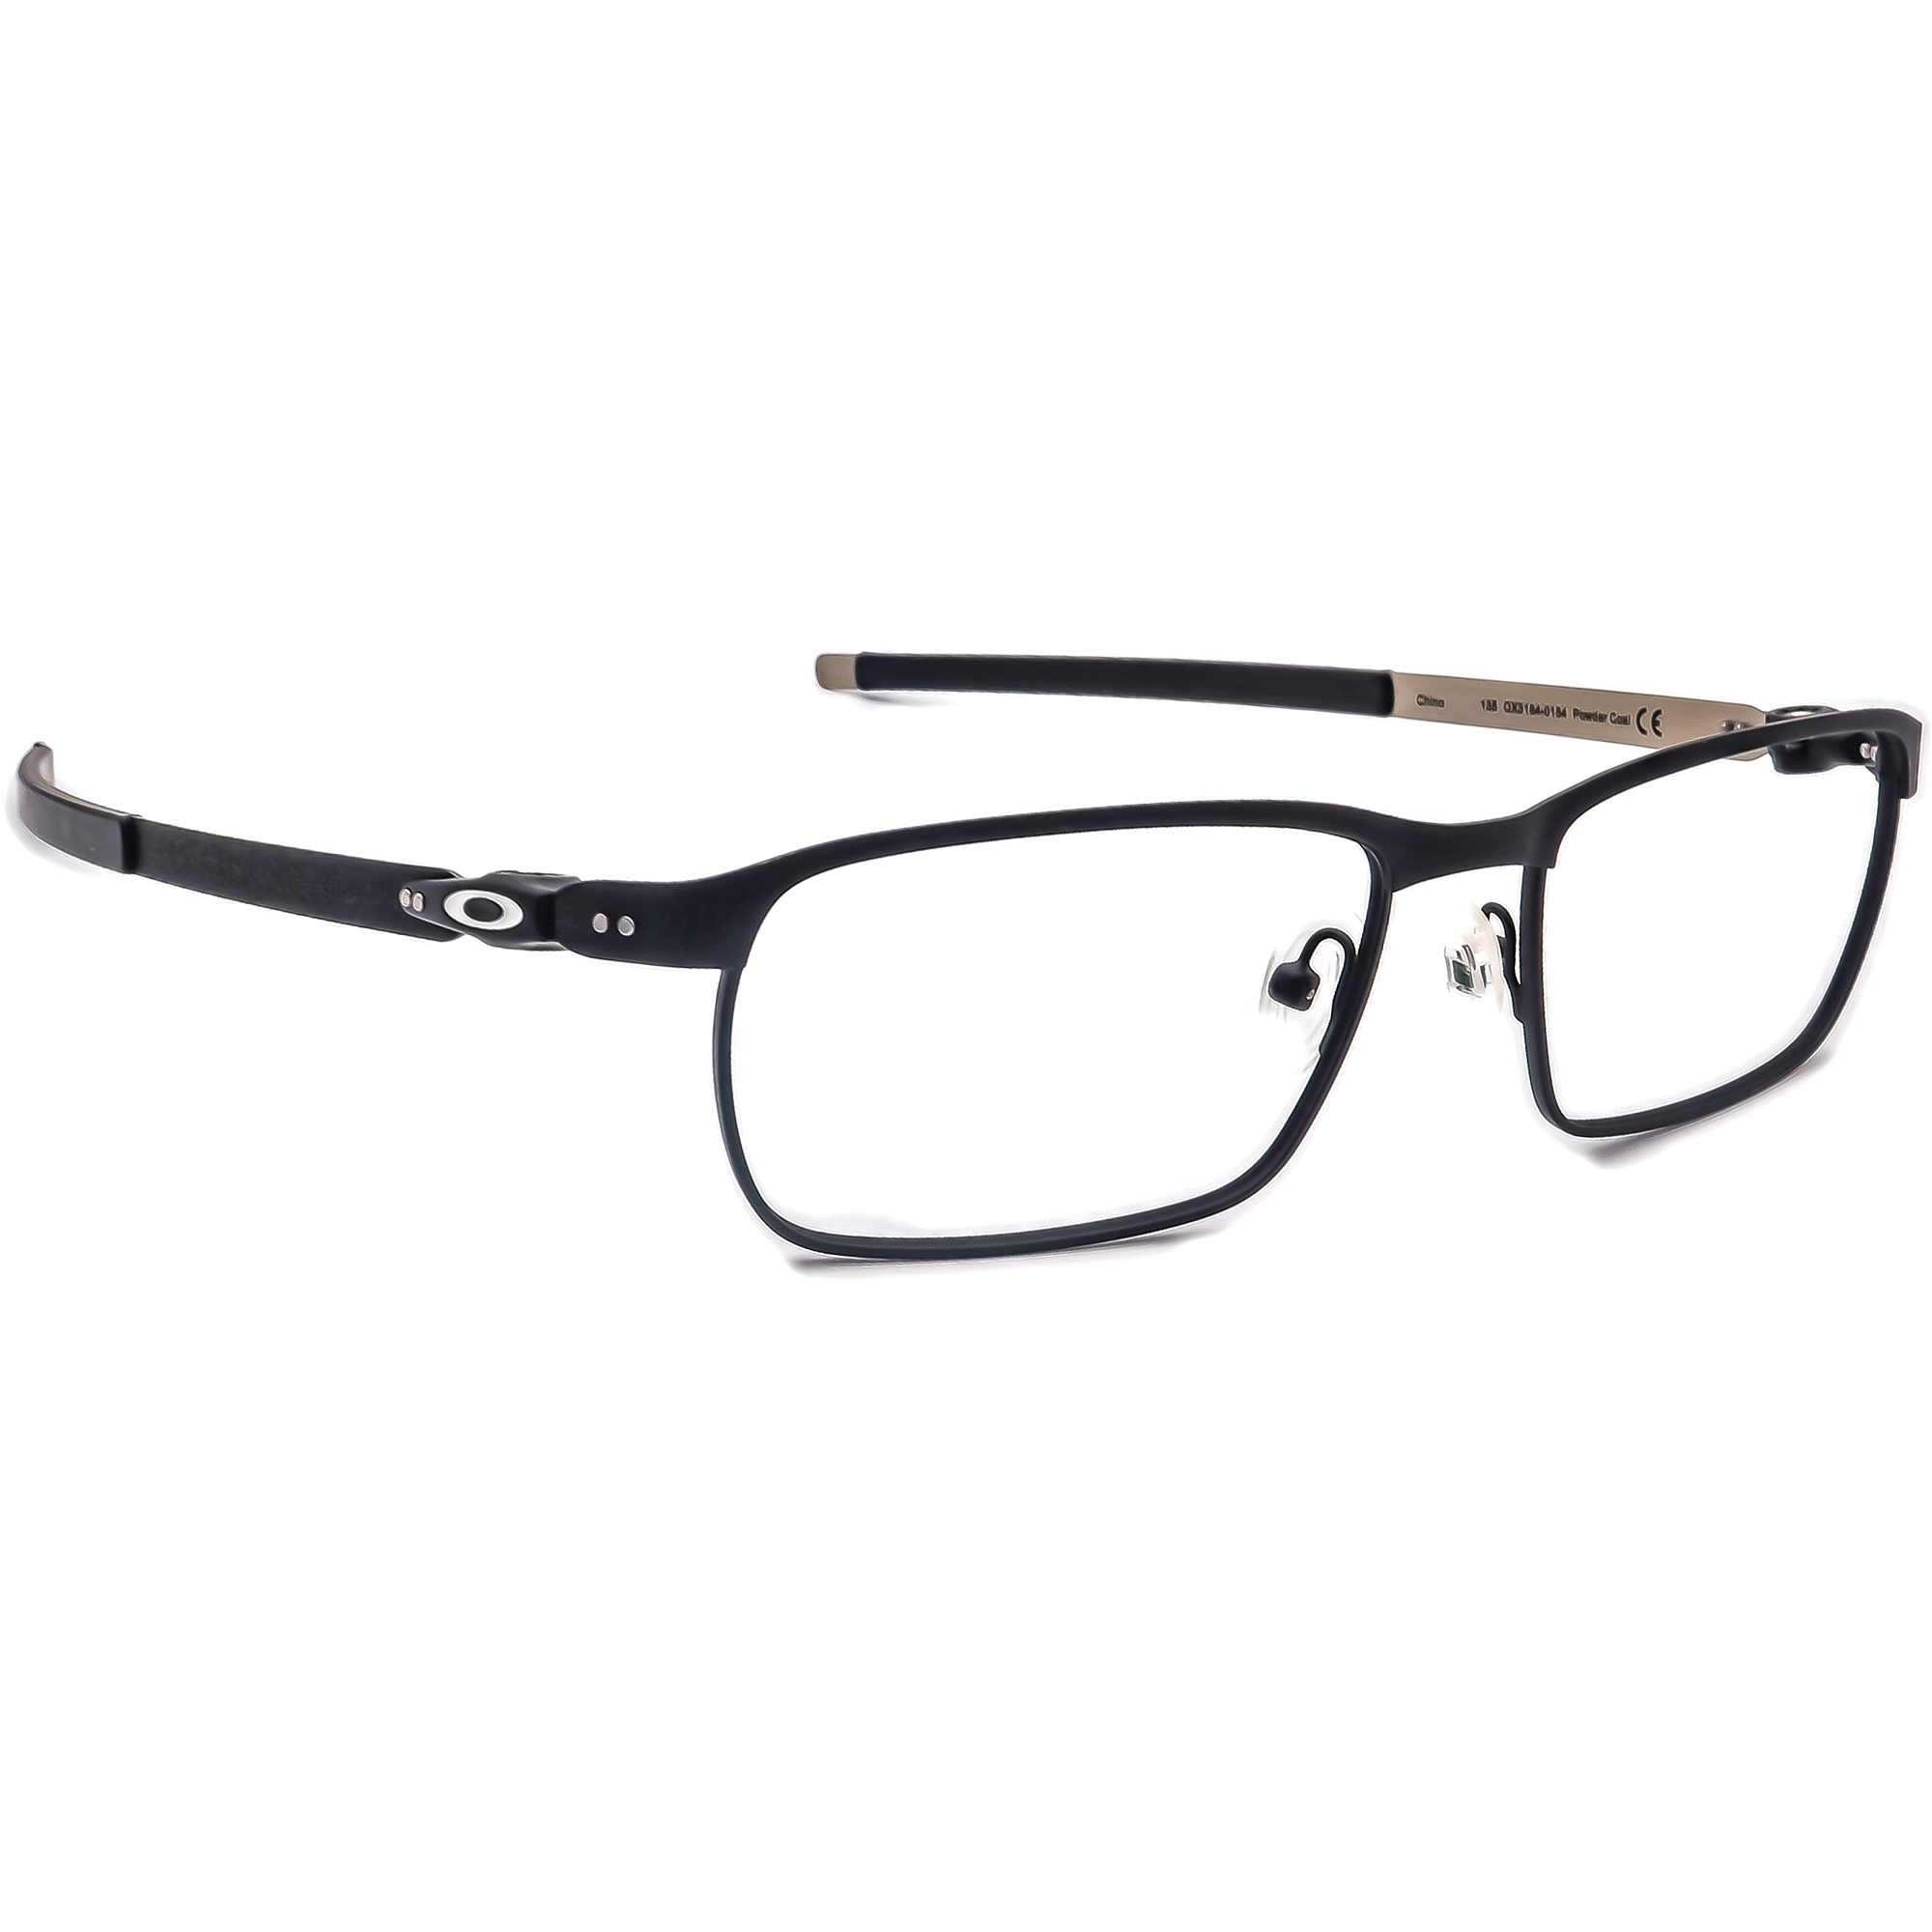 Oakley OX3184-0154 Tincup Powder Coal Eyeglasses